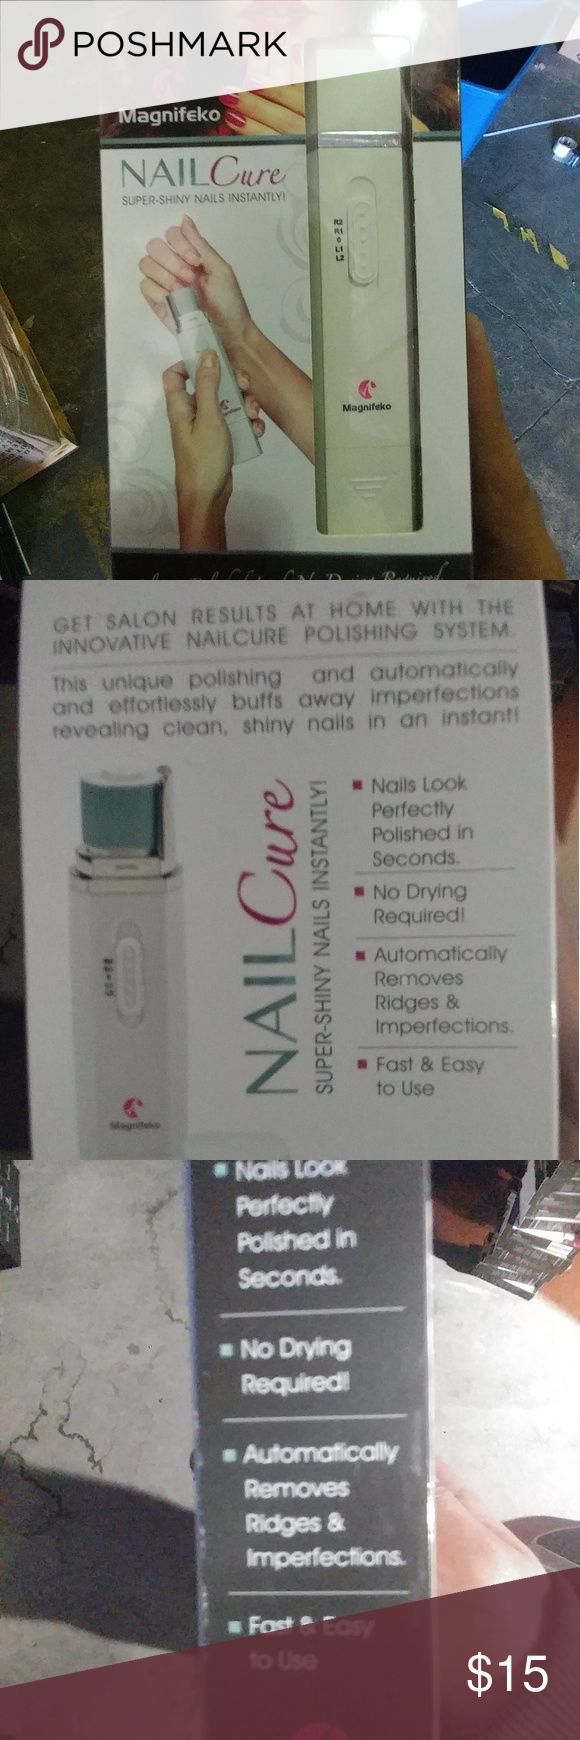 NailCare electric nail file and buffer includes 2extra files magnifeko Makeup Brushes & Tools